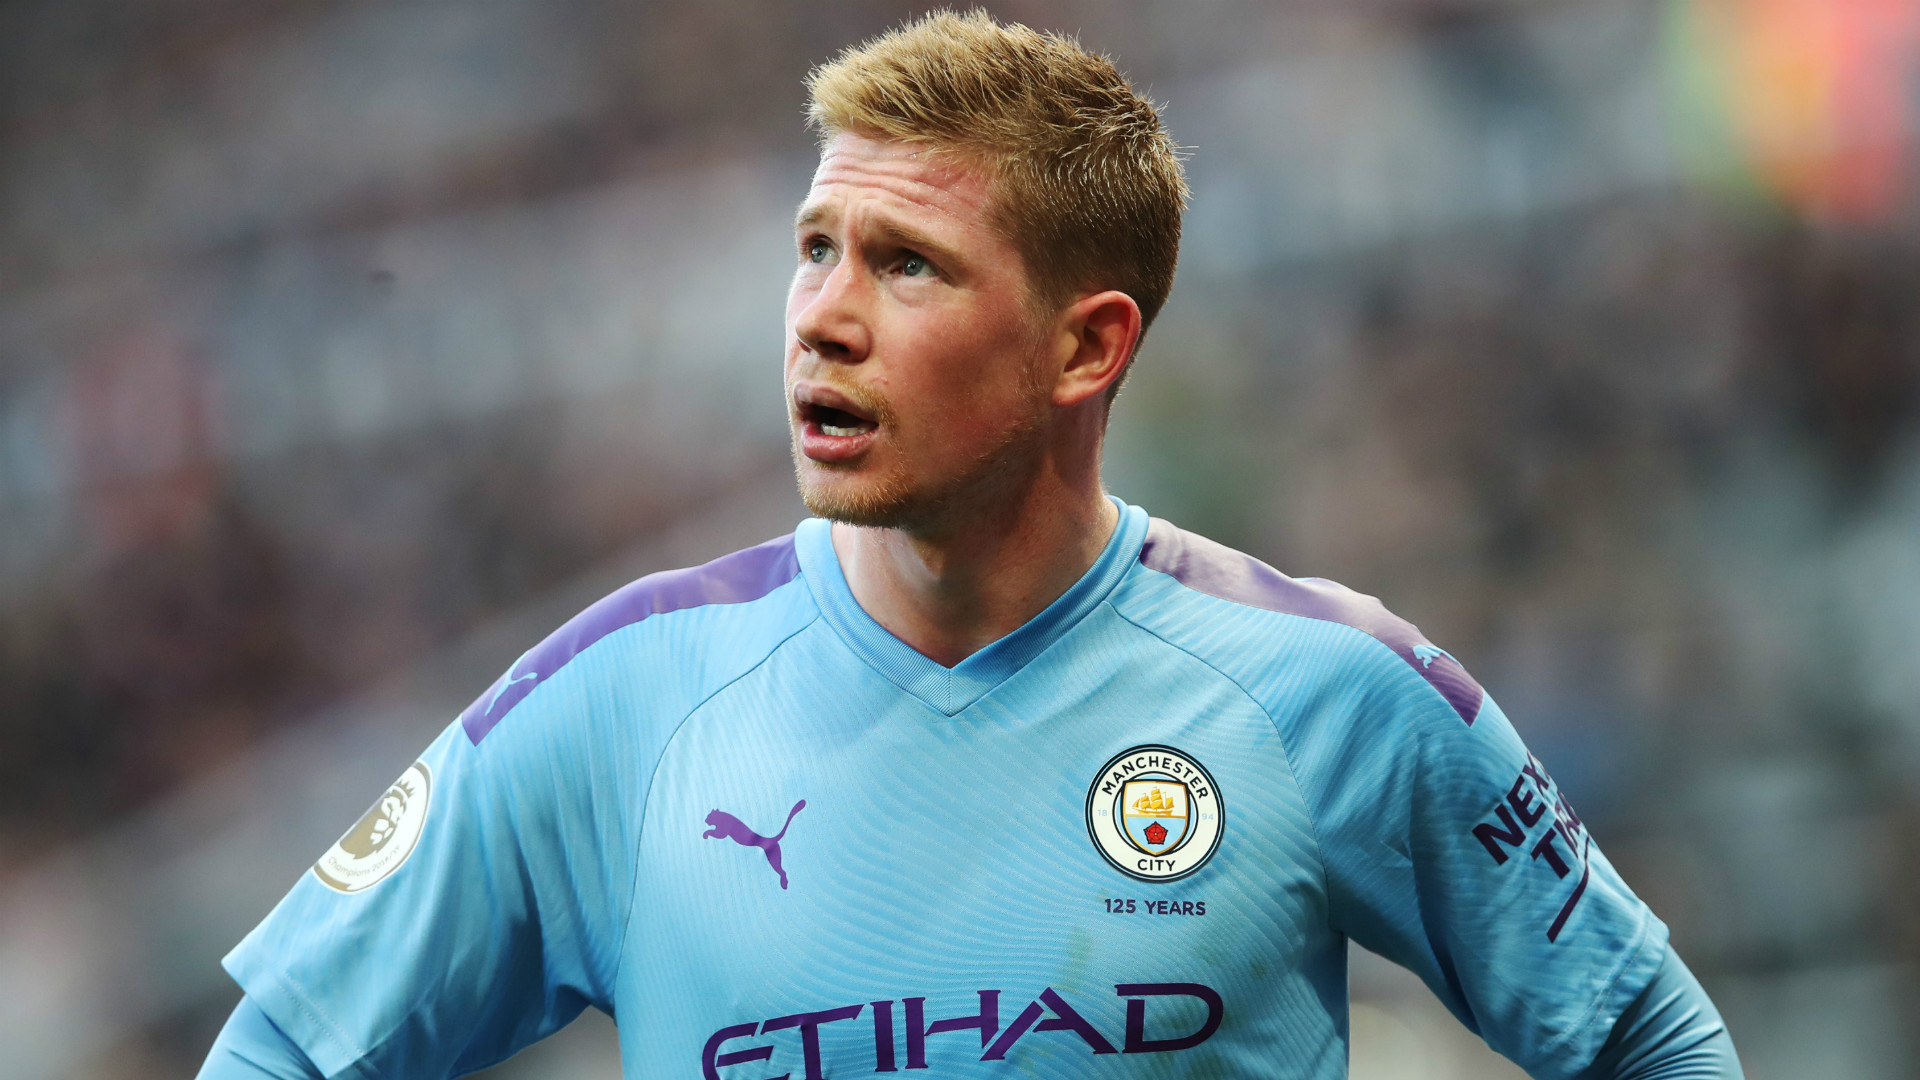 De Bruyne reveals he may have suffered from coronavirus | Goal.com